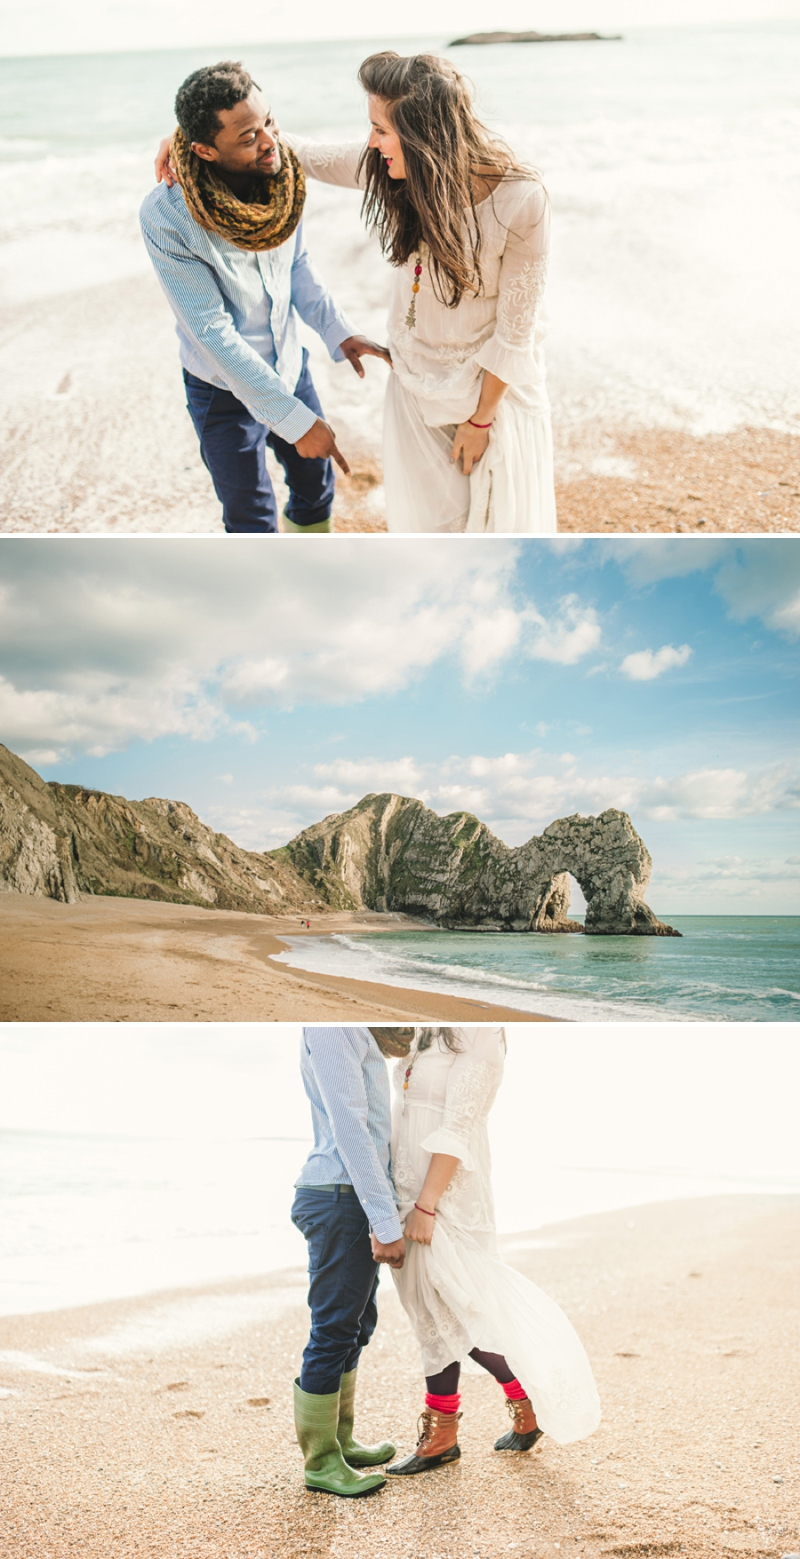 A coastal engagement shoot by Rebekah Murray 0560 A Magical Day.